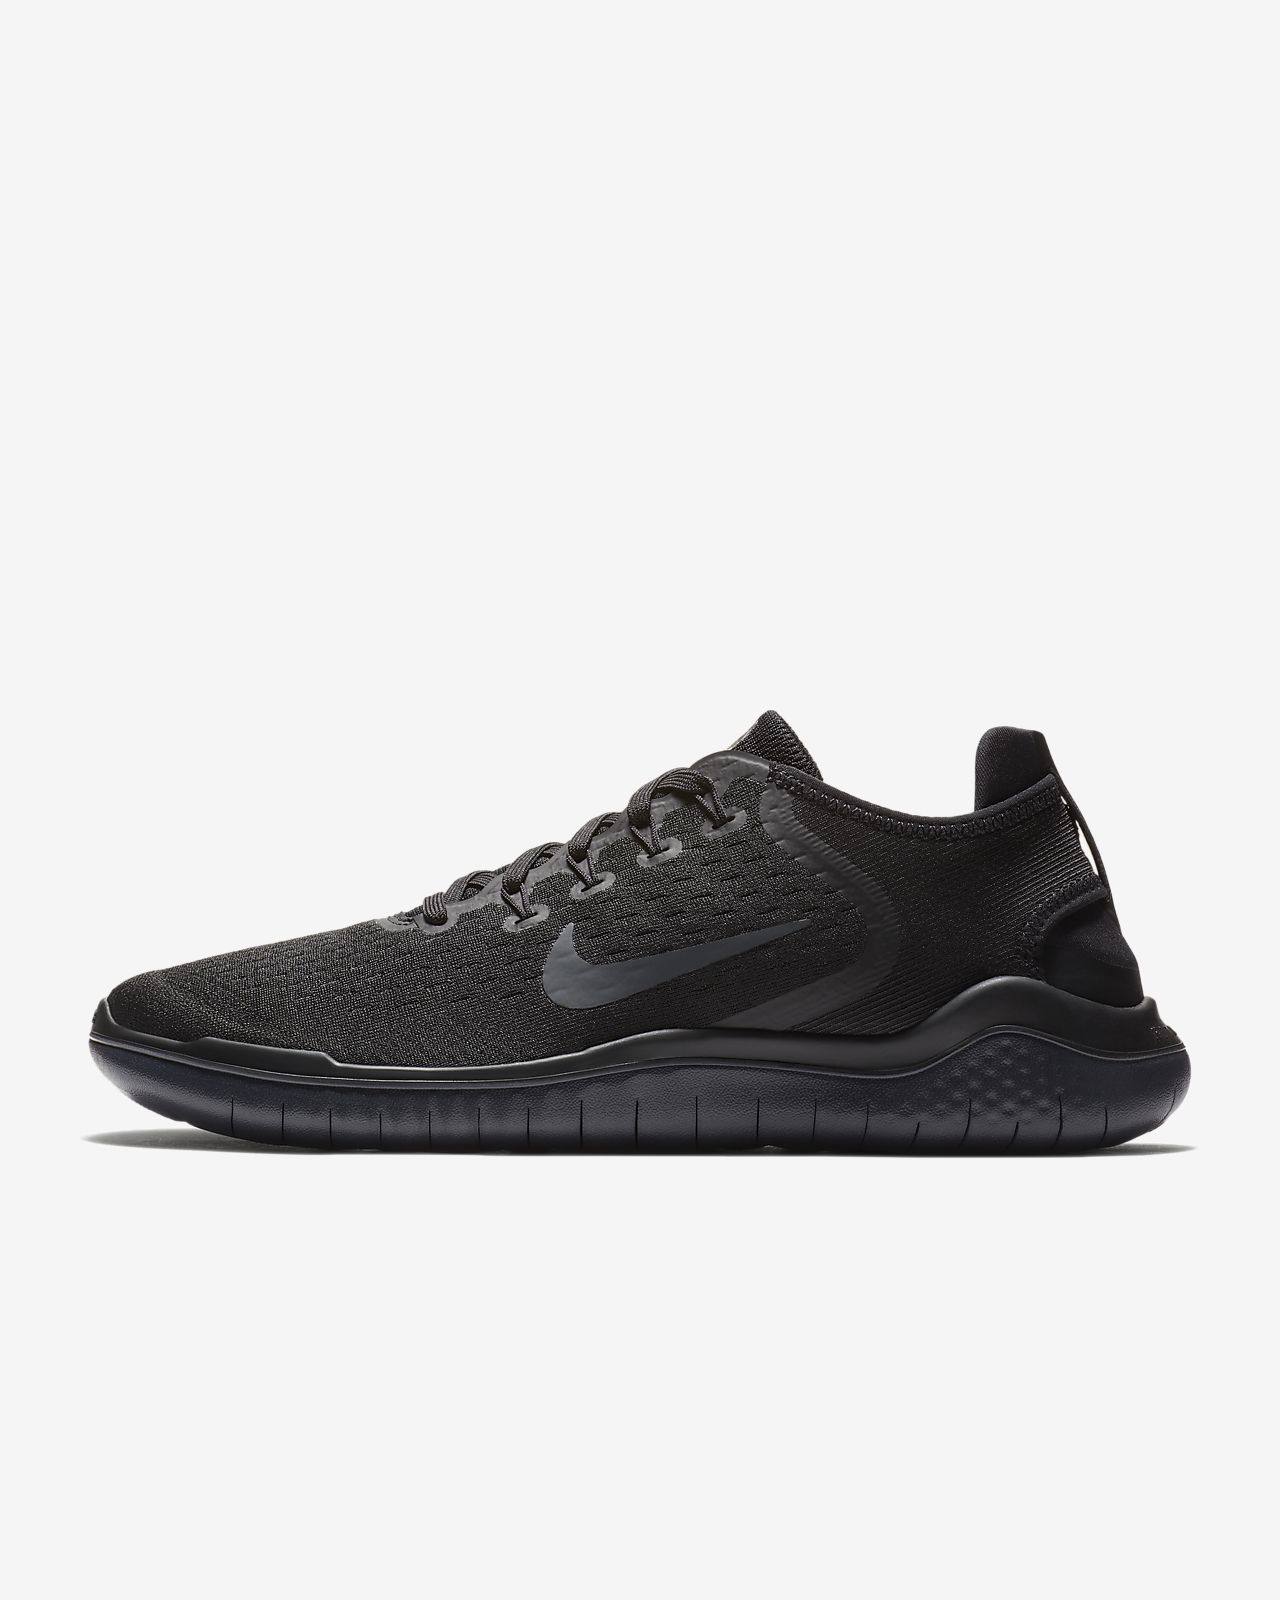 Nike Free Rn Flyknit 2020 Review.Nike Free Rn 2018 Men S Running Shoe